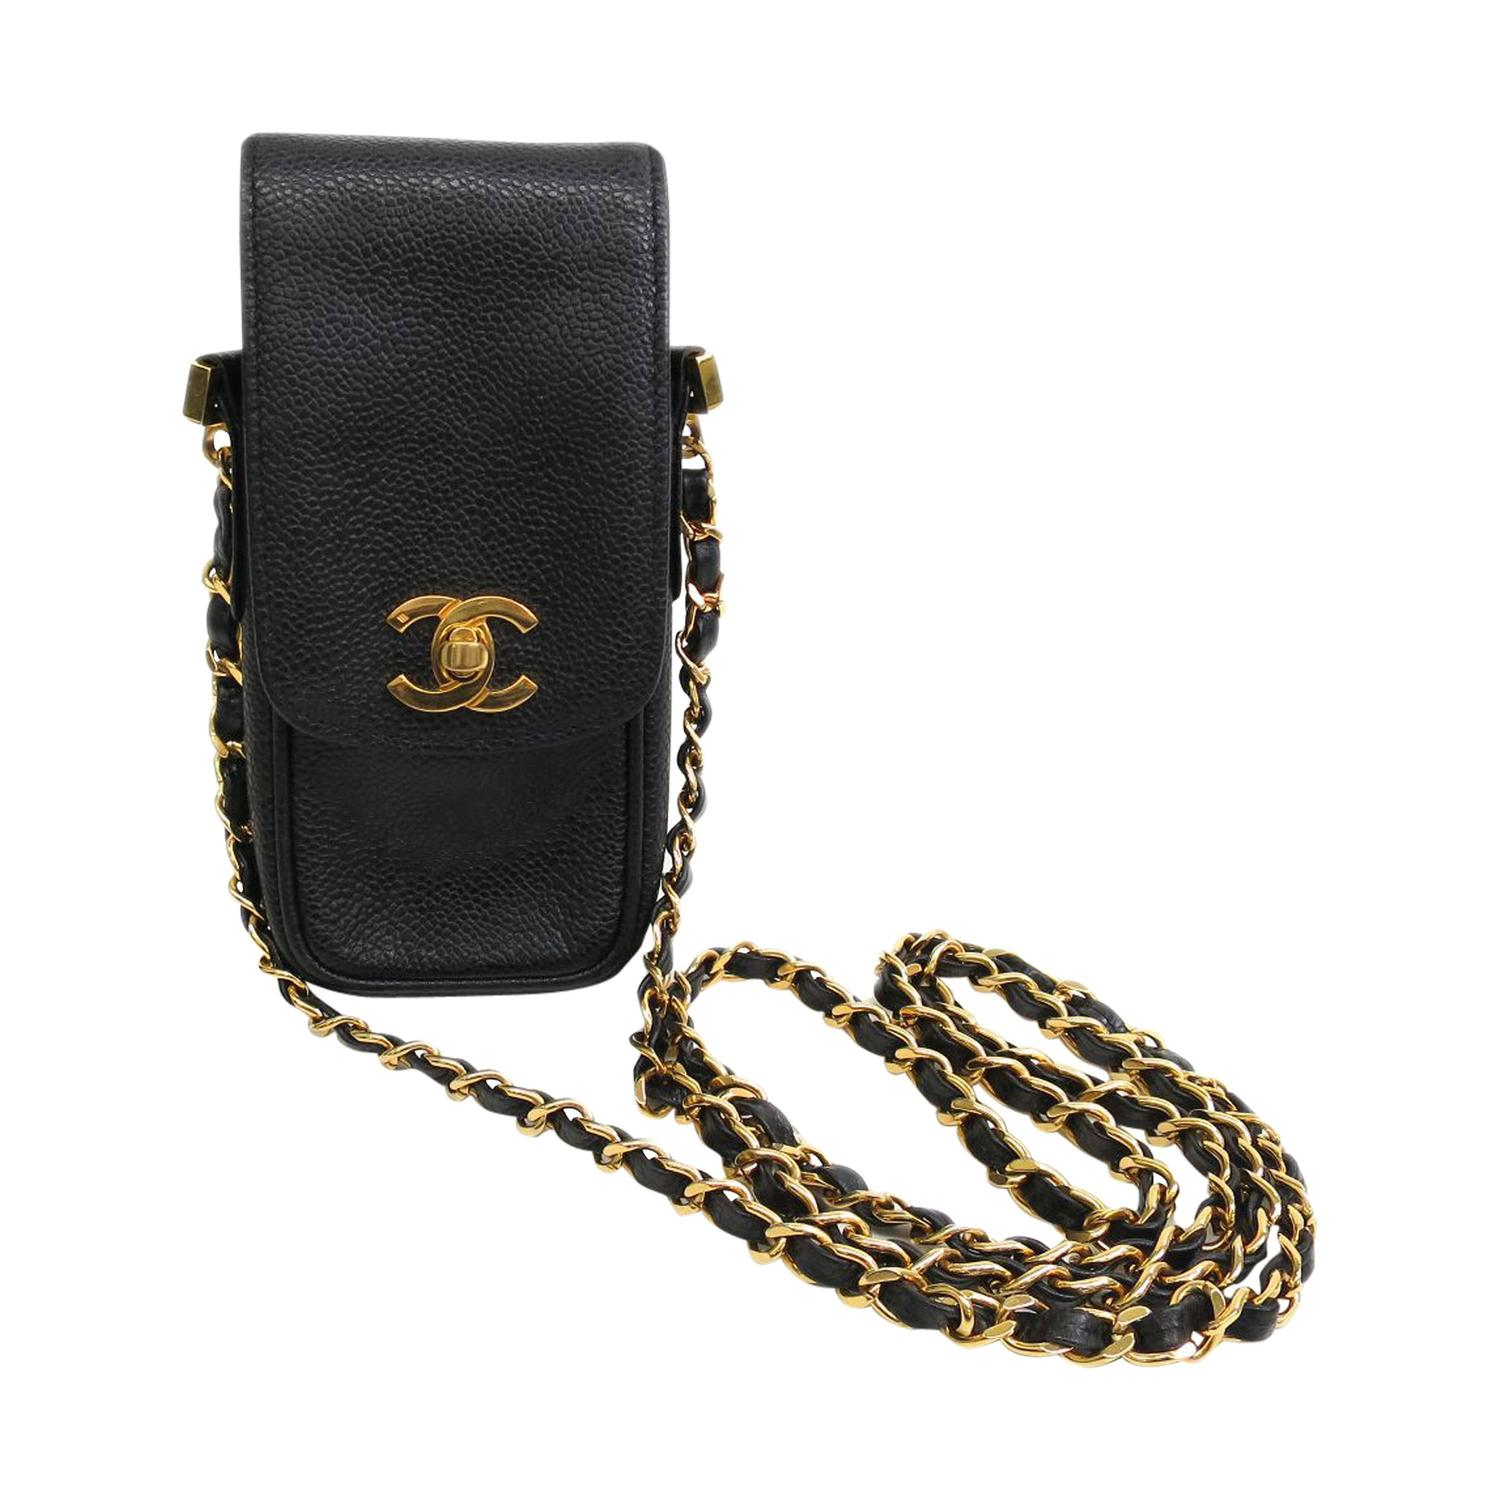 Looks - Iphone Chanel case with chain price video